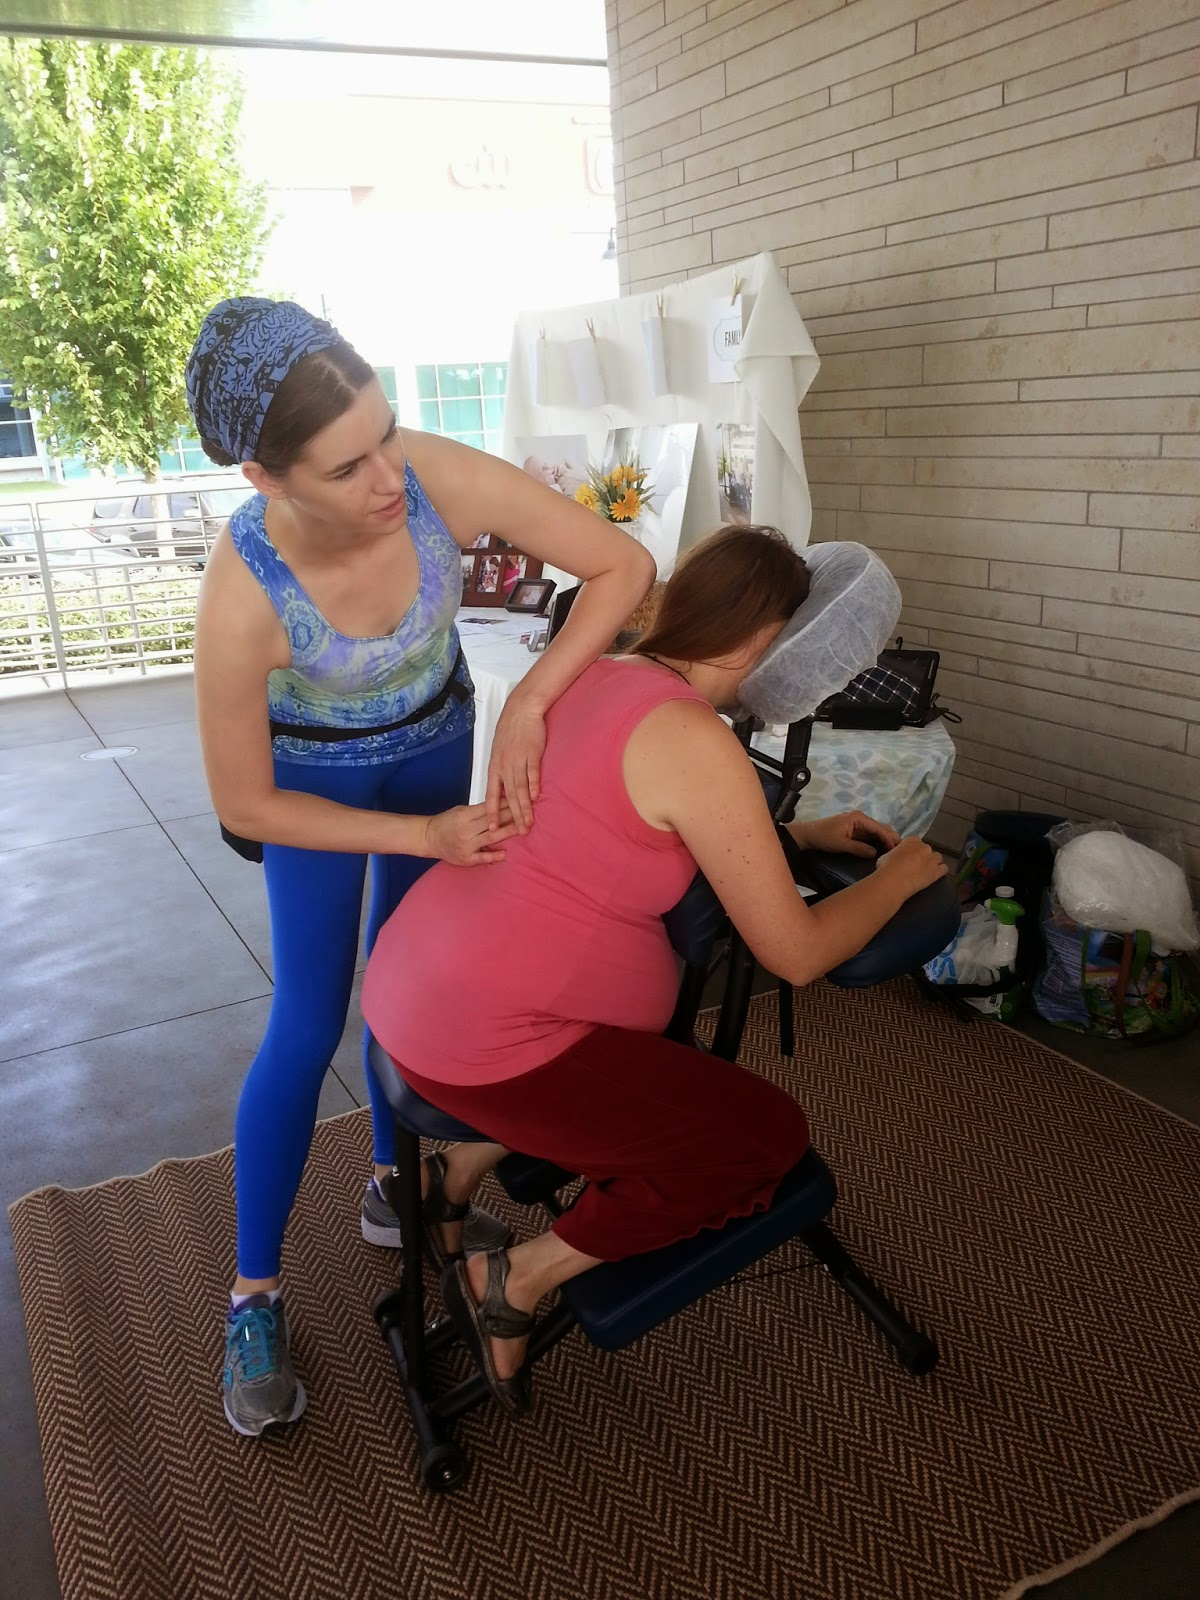 hairy-teen-being-massaged-muscle-woman-pon